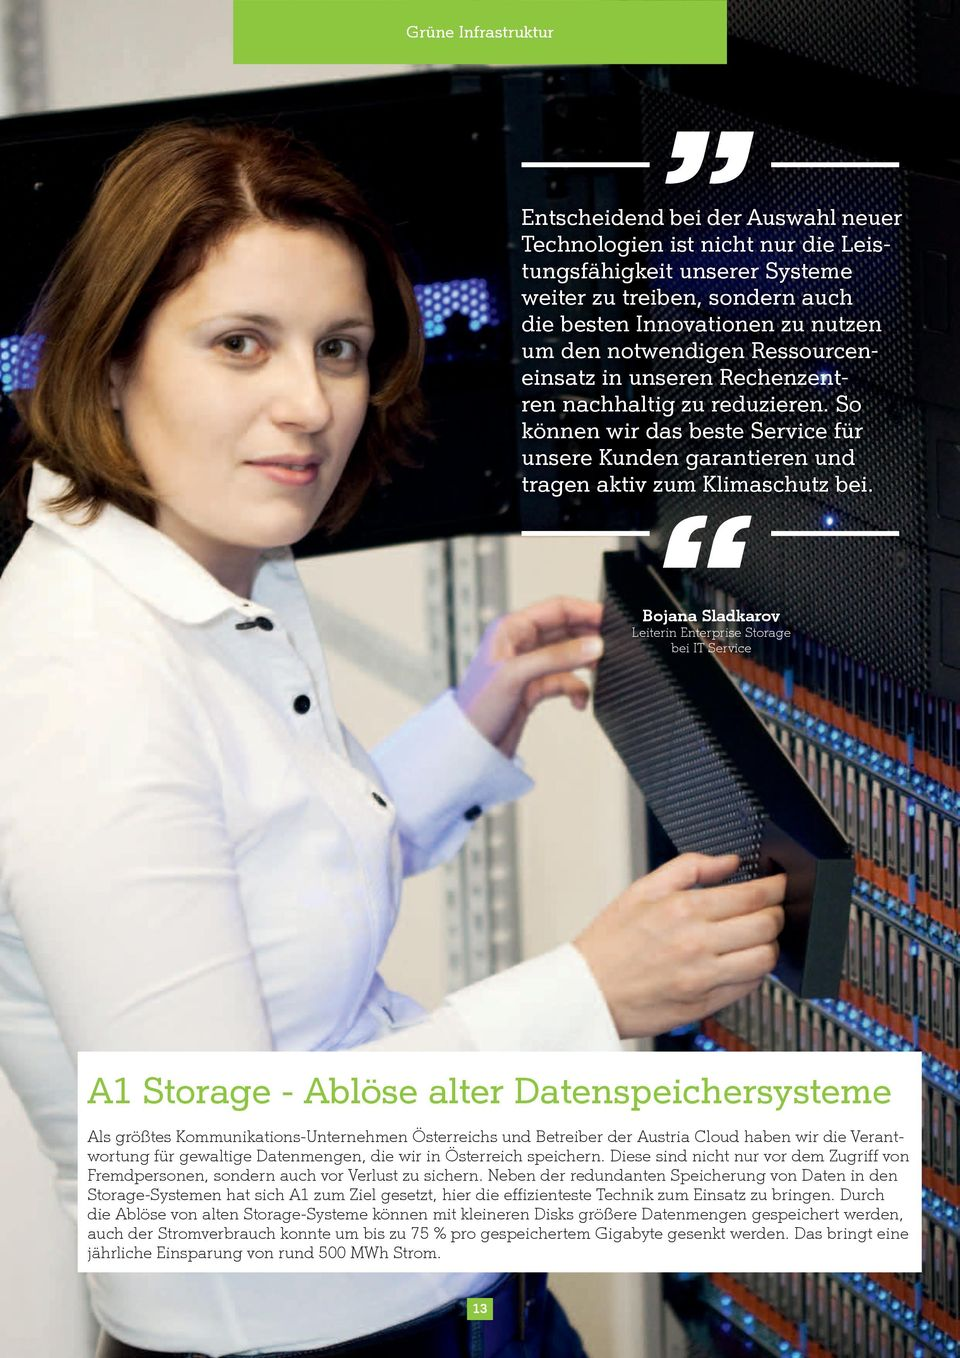 Bojana Sladkarov Leiterin Enterprise Storage bei IT Service A1 Storage - Ablöse alter Datenspeichersysteme Als größtes Kommunikations-Unternehmen Österreichs und Betreiber der Austria Cloud haben wir